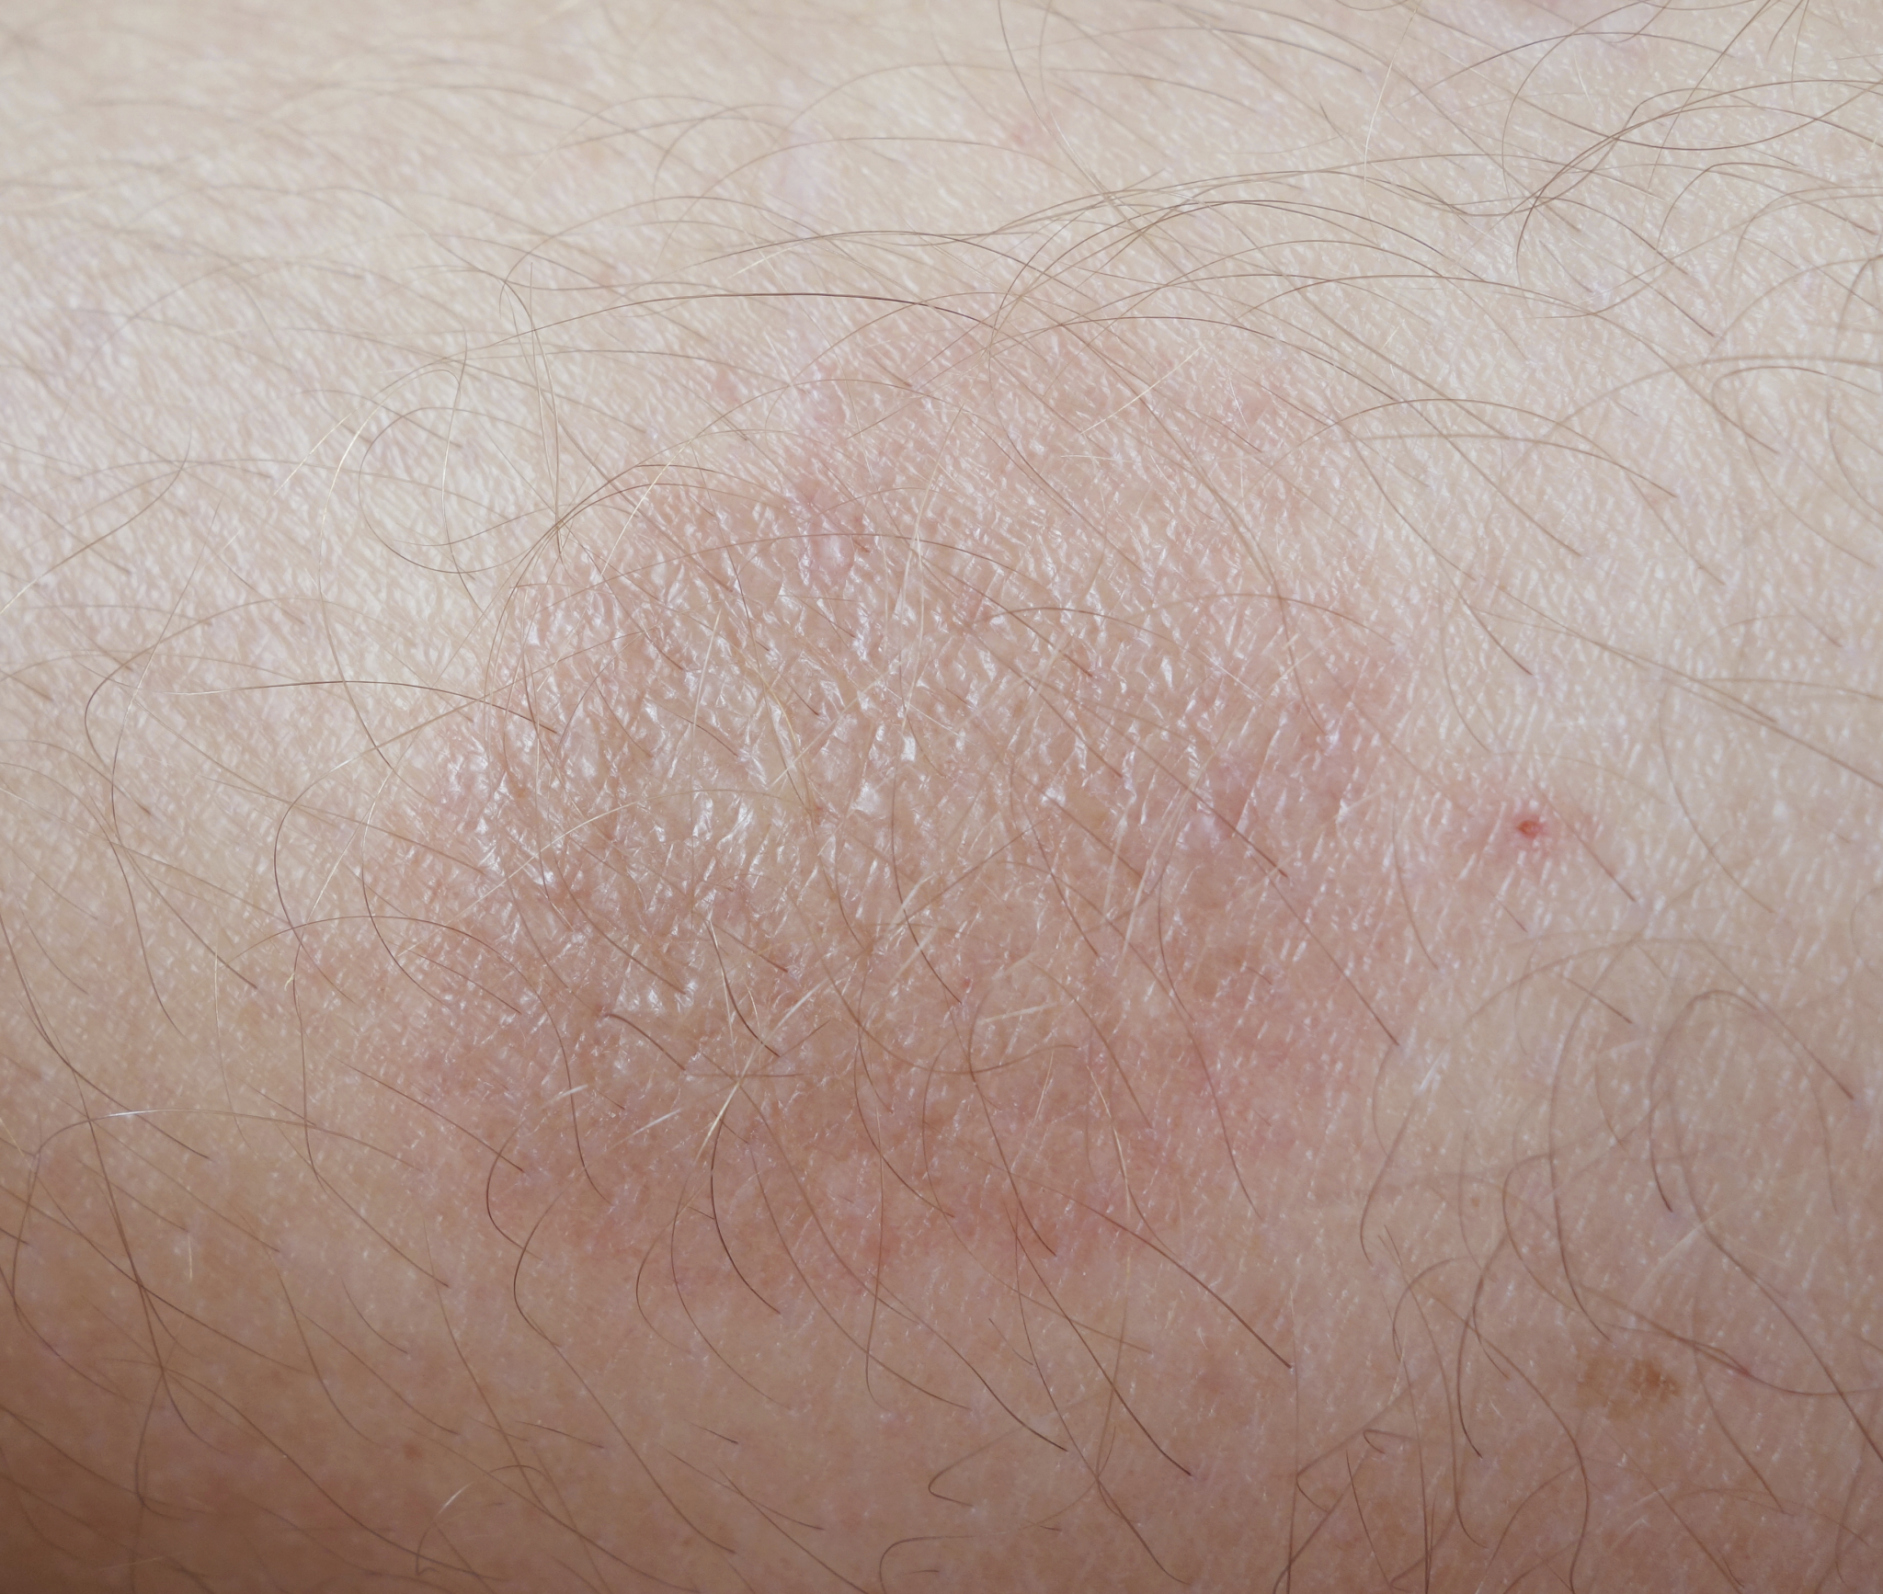 Burn remedy nair How to